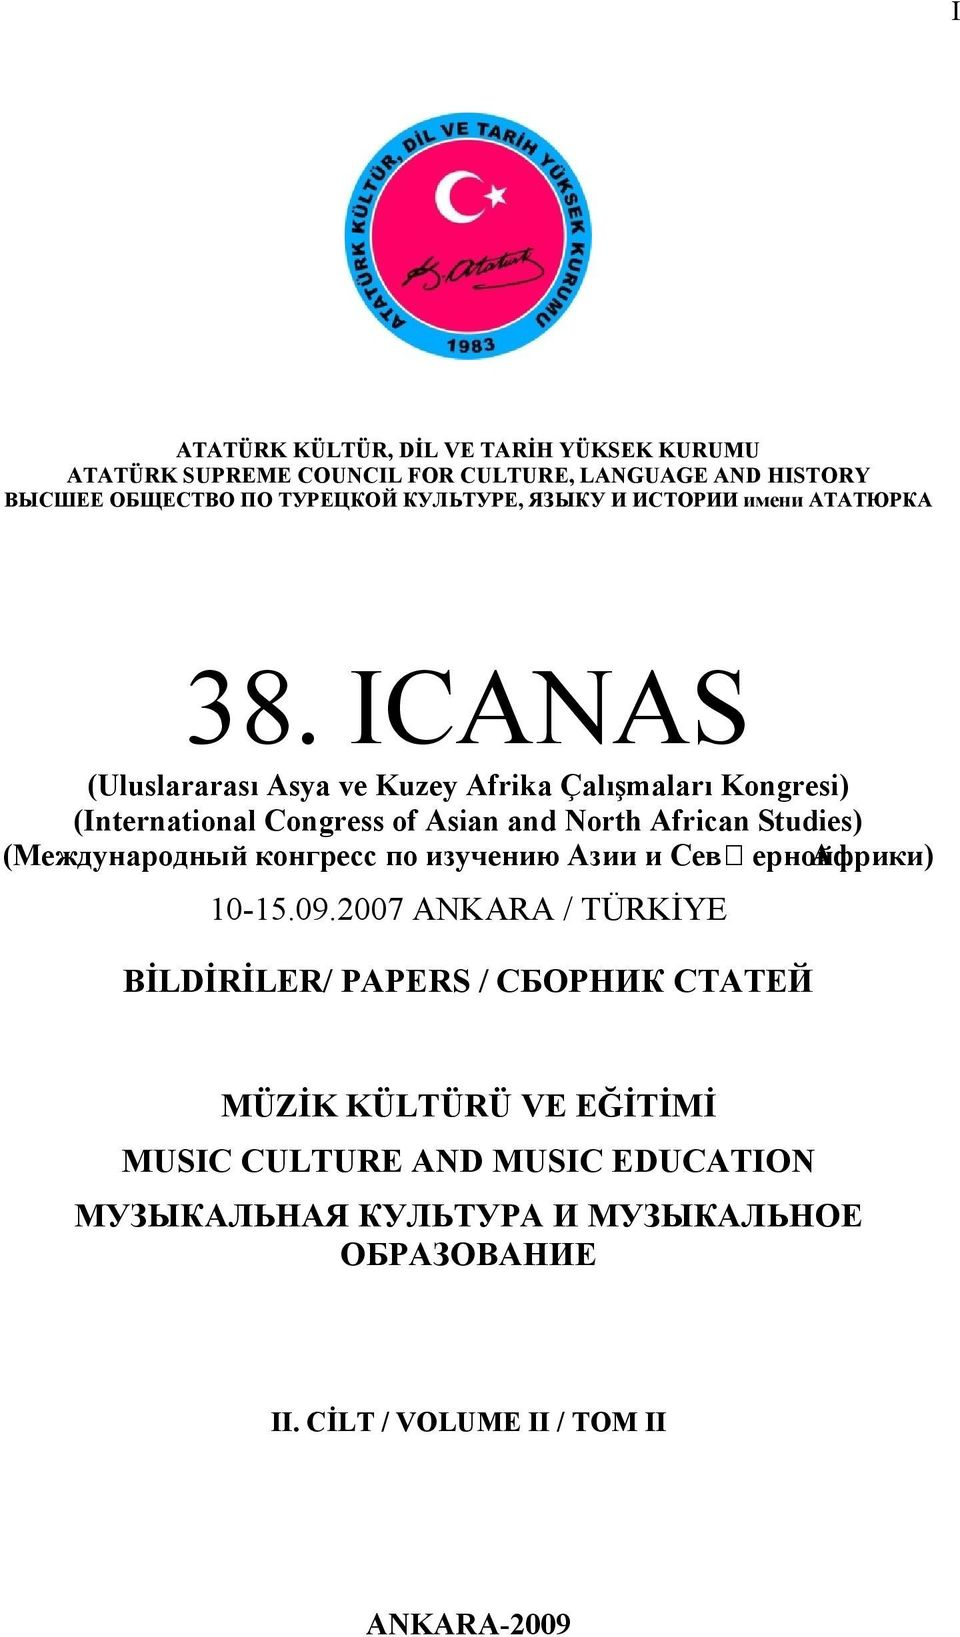 ICANAS (Uluslararası Asya ve Kuzey Afrika Çalışmaları Kongresi) (International Congress of Asian and North African Studies) (Международный